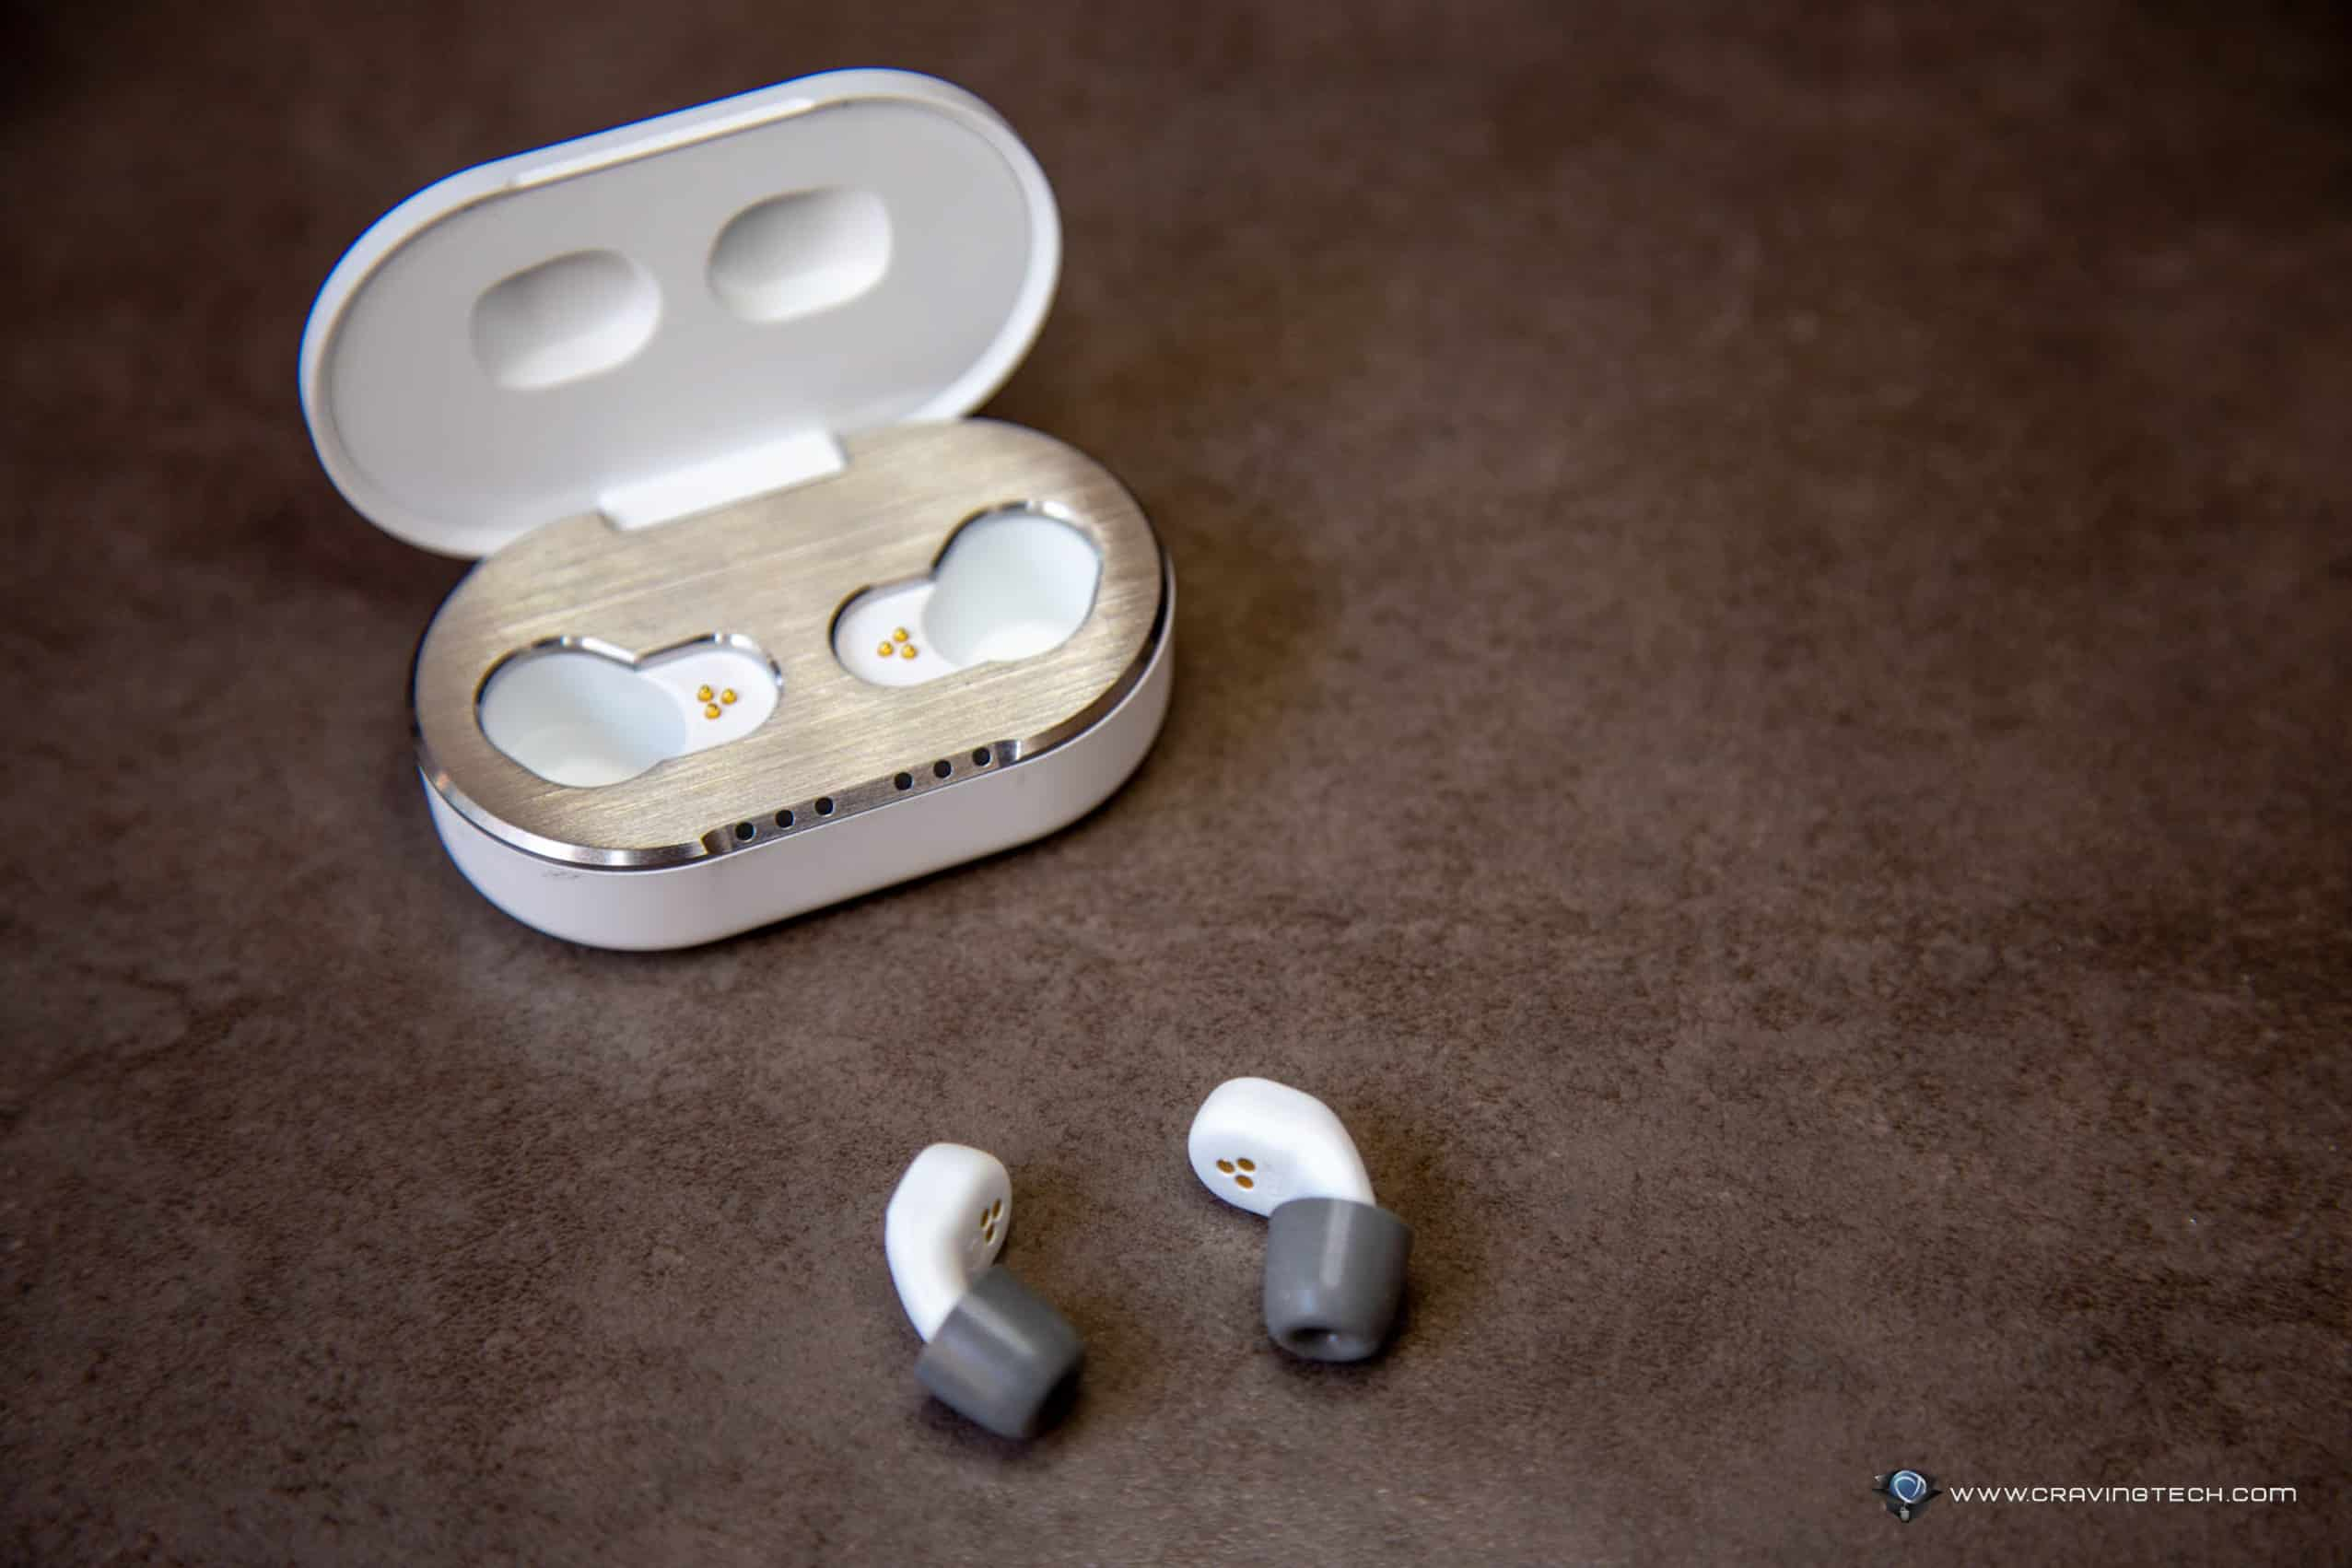 Sleep better with these special, ANC earbuds – QuietOn 3 Sleep Earbuds Review